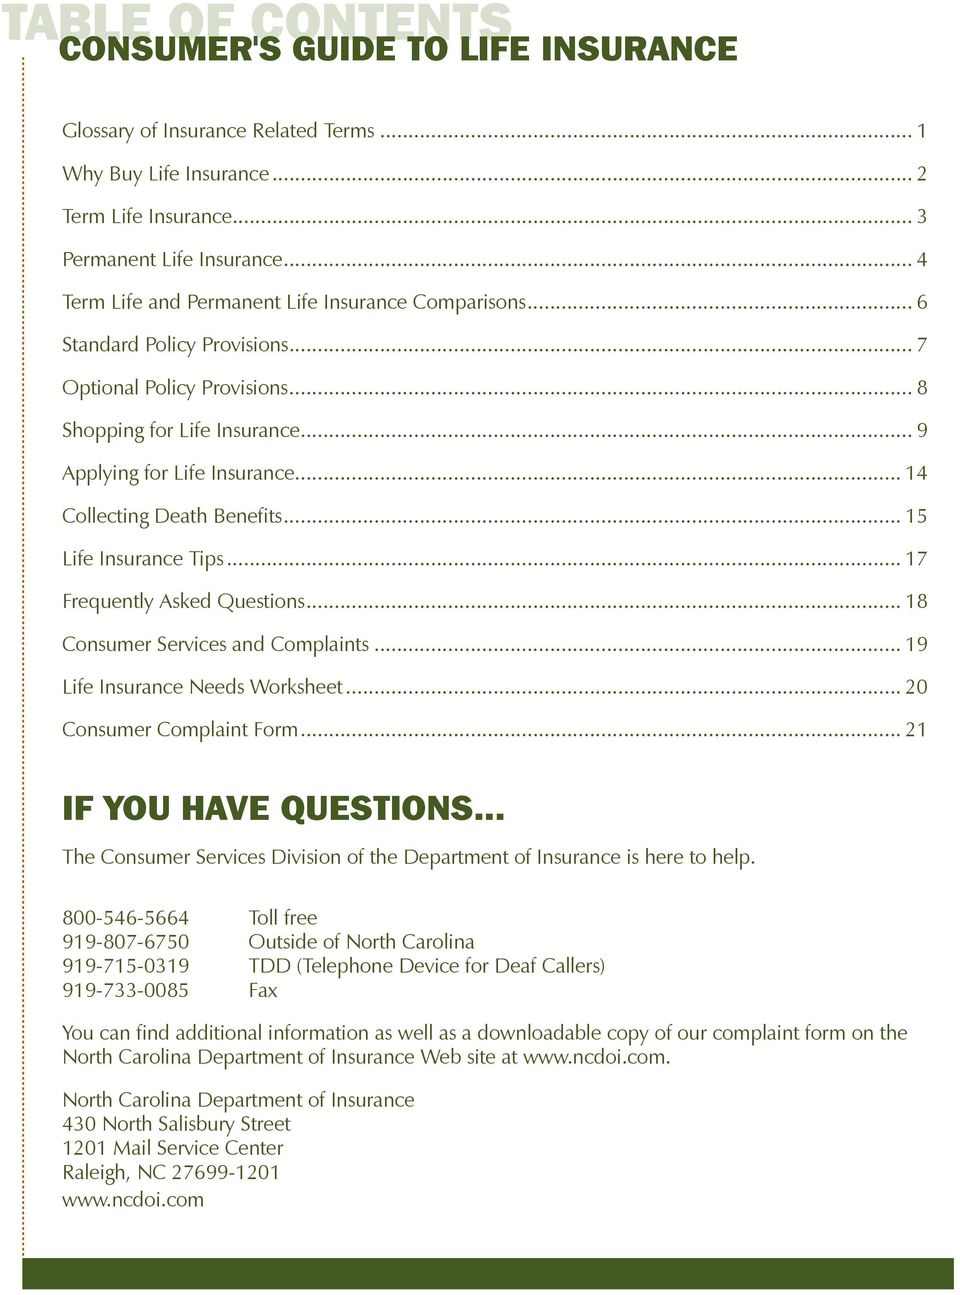 .. 14 Collecting Death Benefits... 15 Life Insurance Tips... 17 Frequently Asked Questions... 18 Consumer Services and Complaints... 19 Life Insurance Needs Worksheet... 20 Consumer Complaint Form.